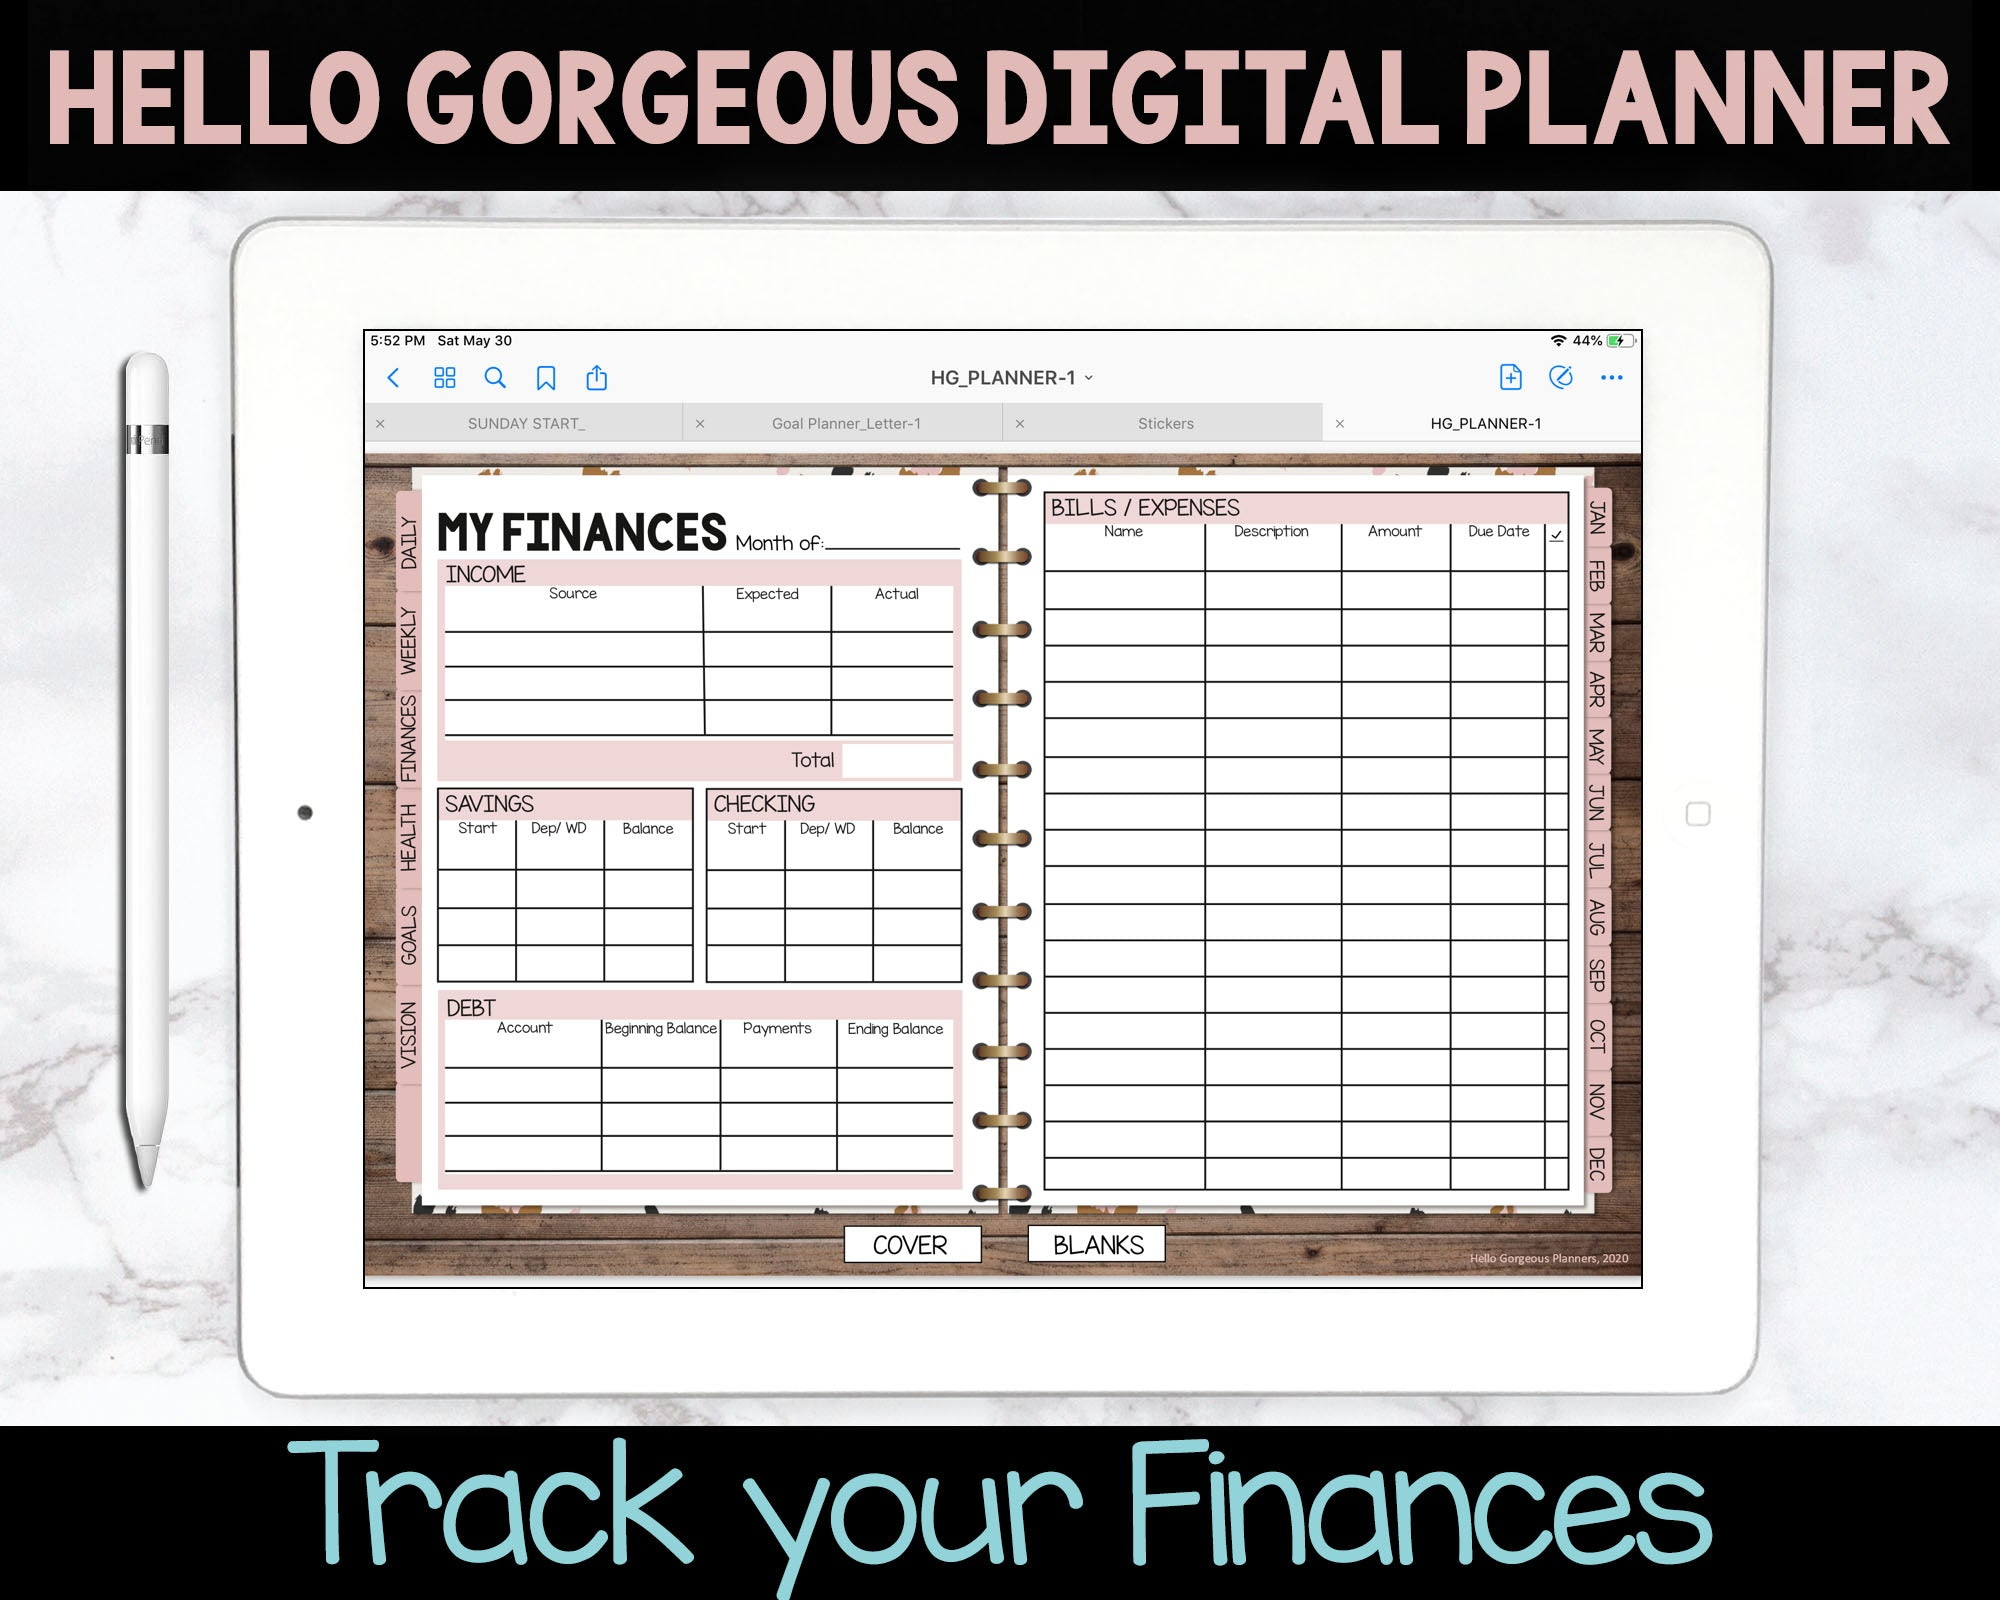 Hello Gorgeous Animal Print Digital Planner - Leopard Print - Undated Instant Download